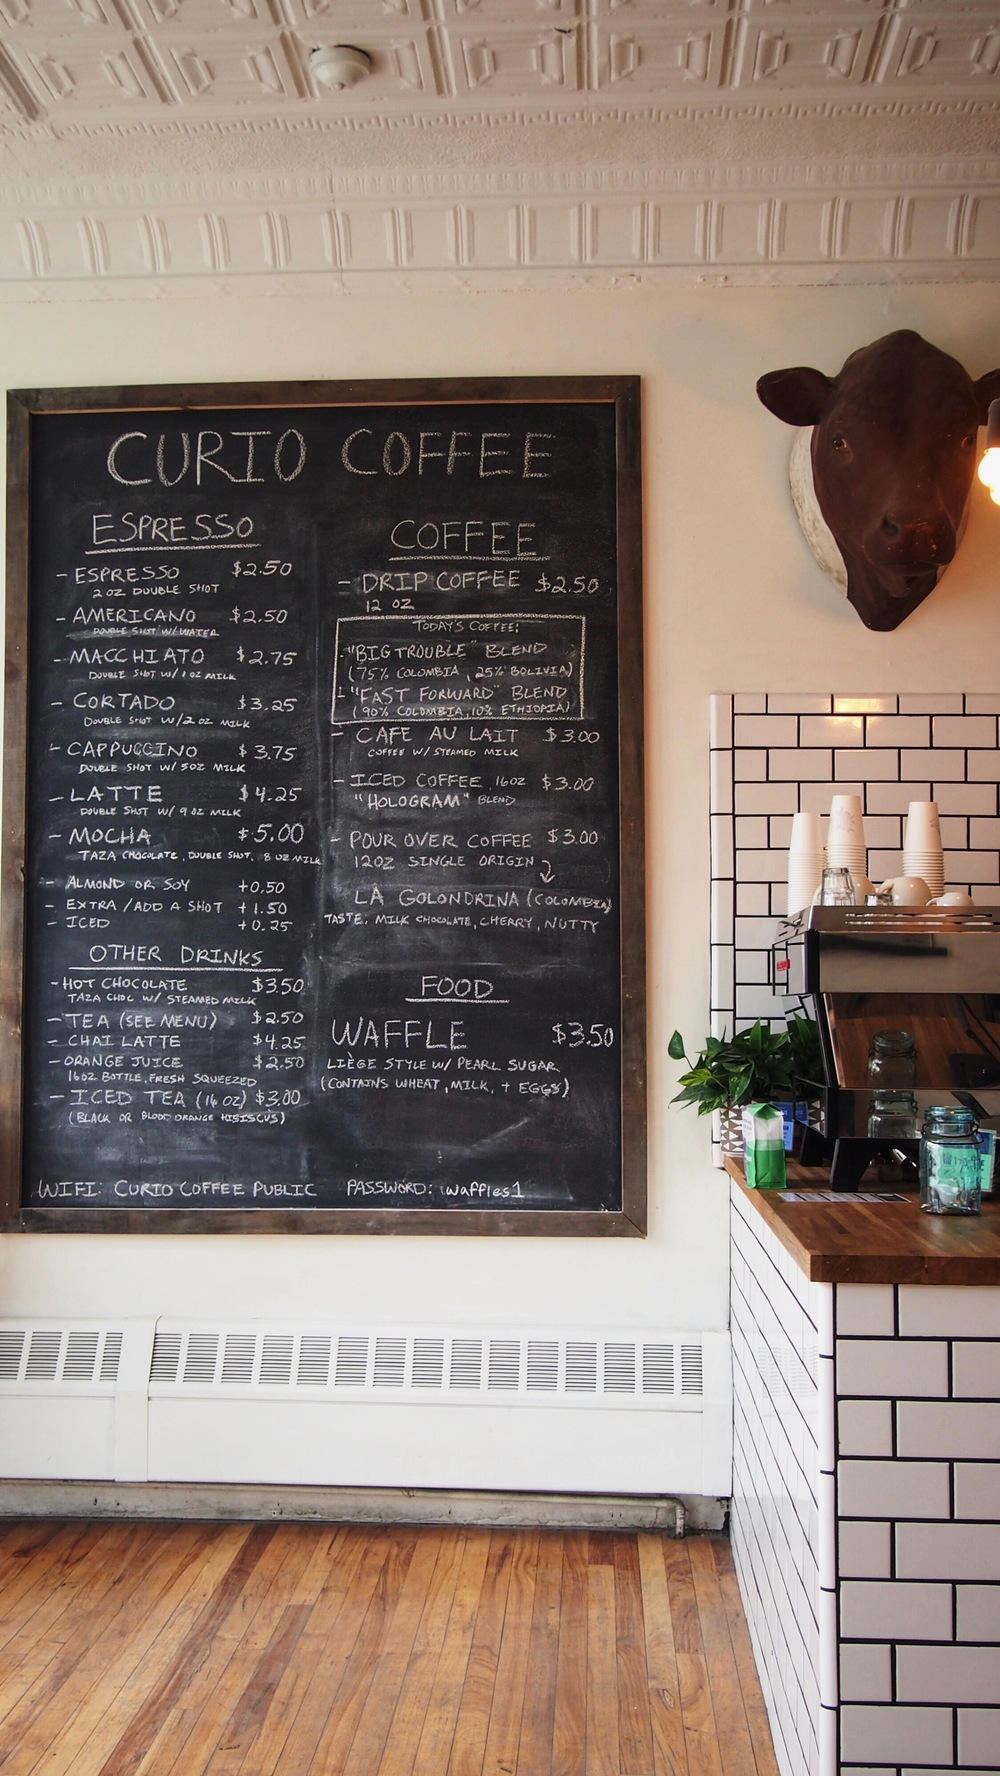 The menu at Curio.